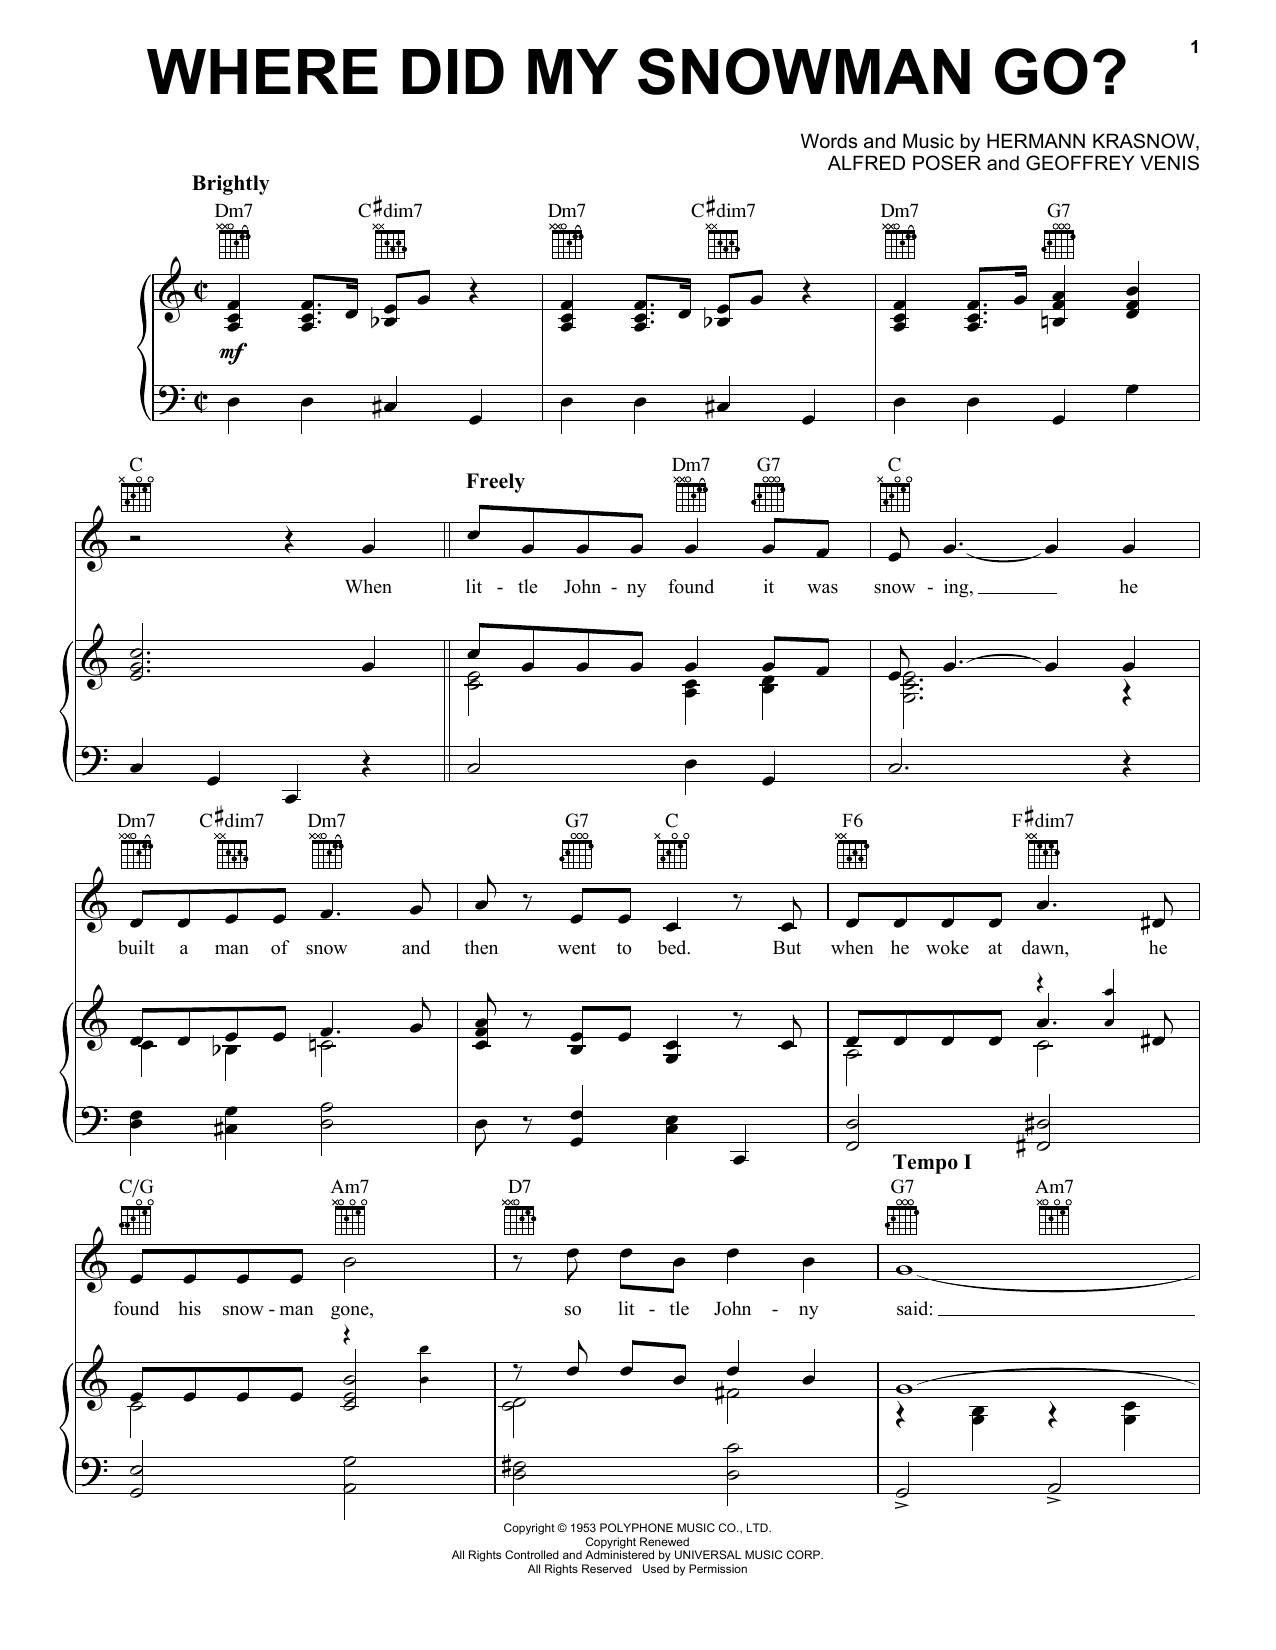 Where Did My Snowman Go? Sheet Music